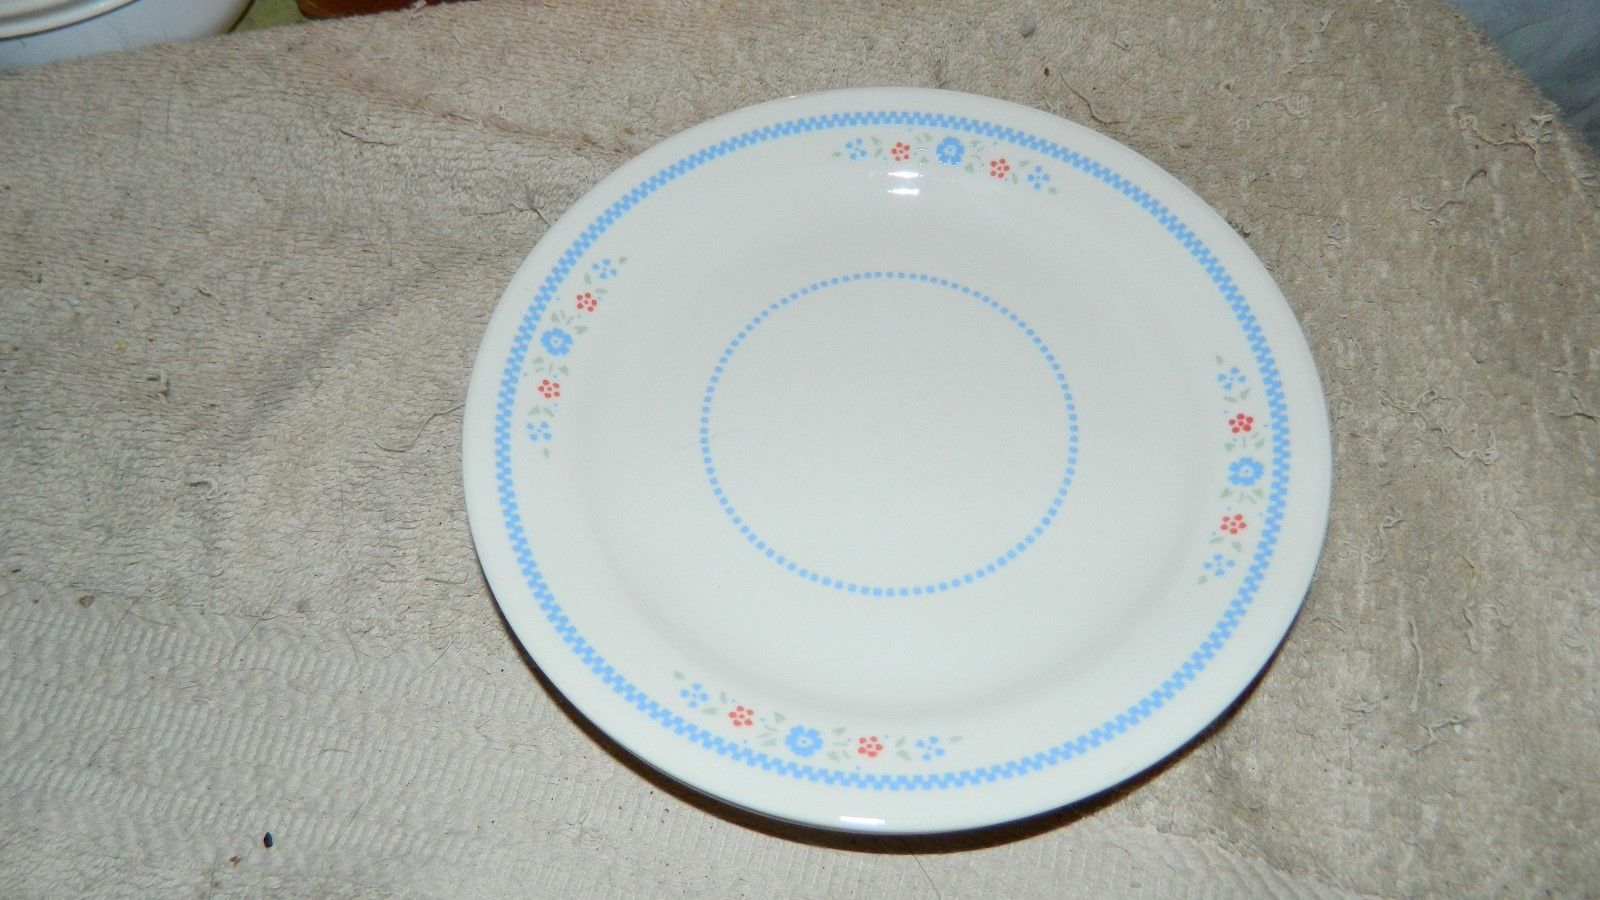 Primary image for CORELLE NEEDLEPOINT SALAD / BREAD / DESSERT PLATES SET OF 4 VGUC FREE USA SHIP